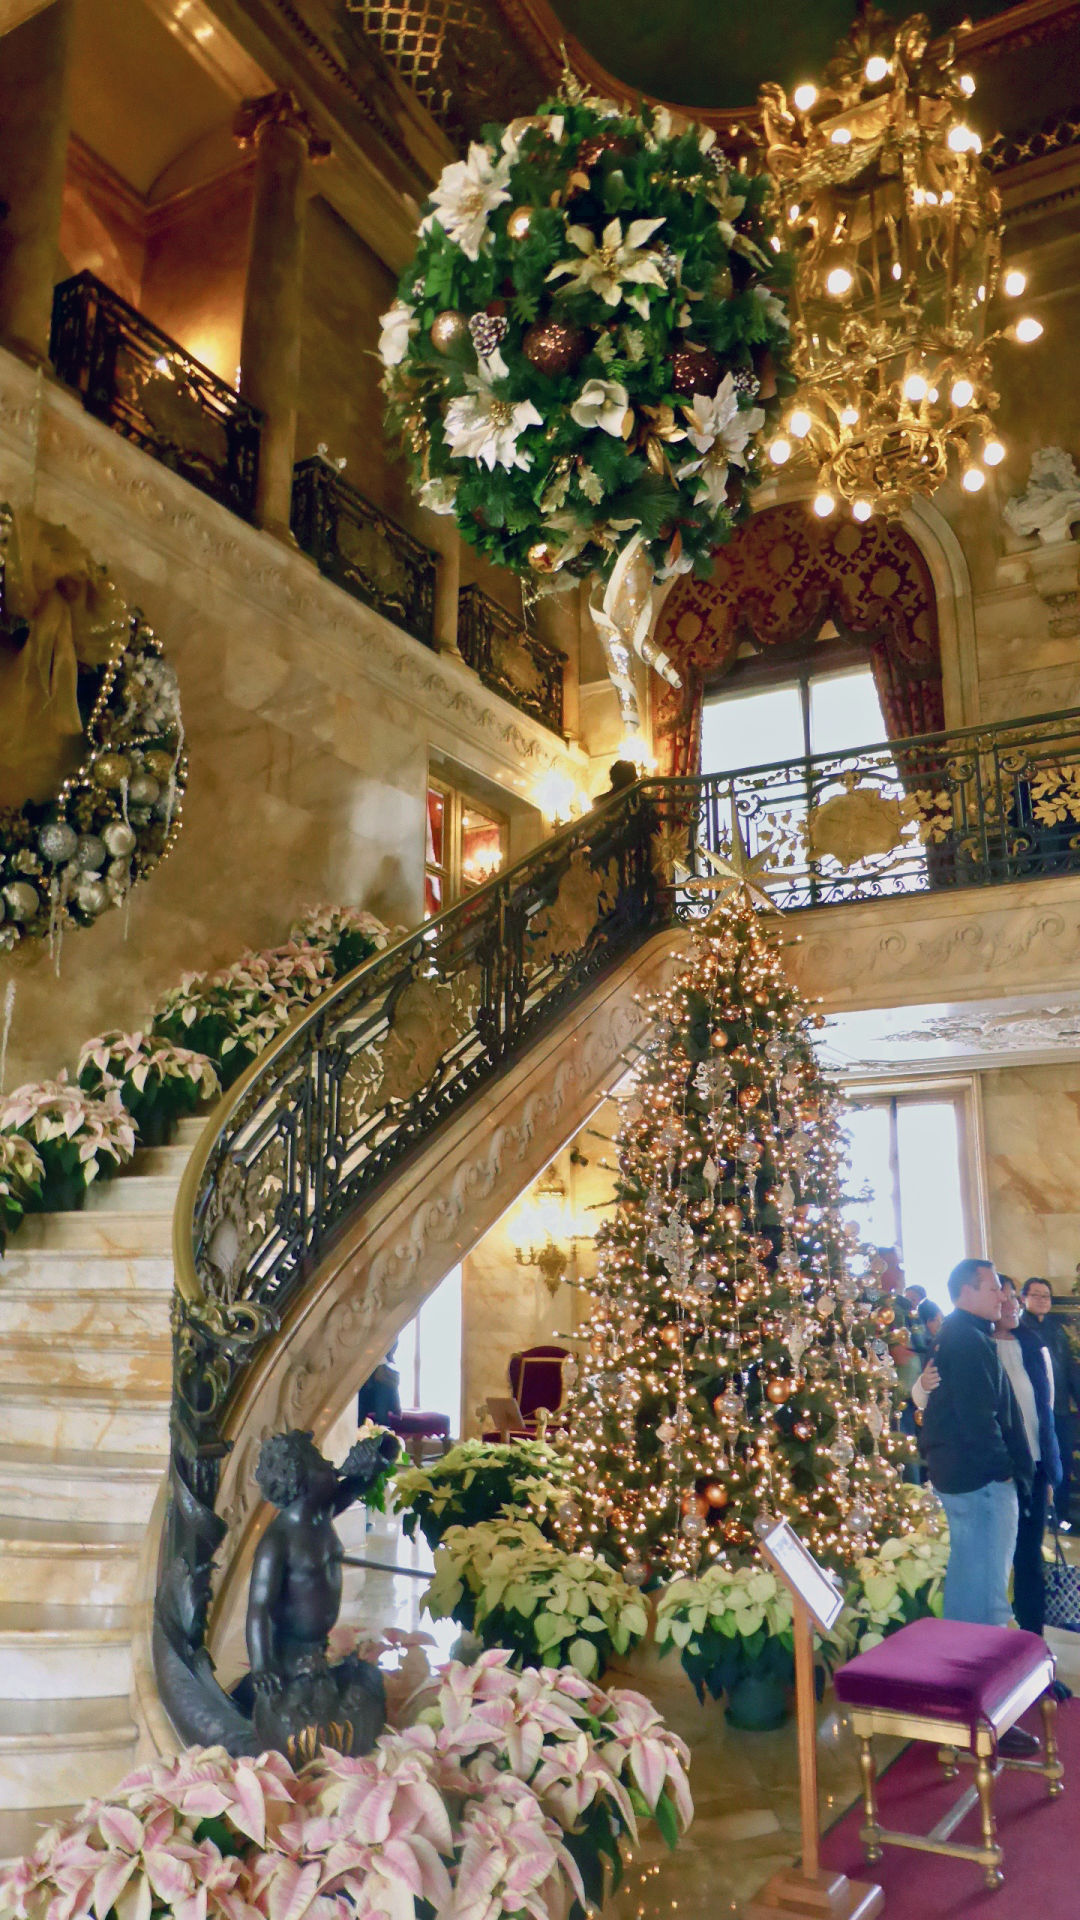 Holidays at the mansions: exploring our local treasures   Stories ...